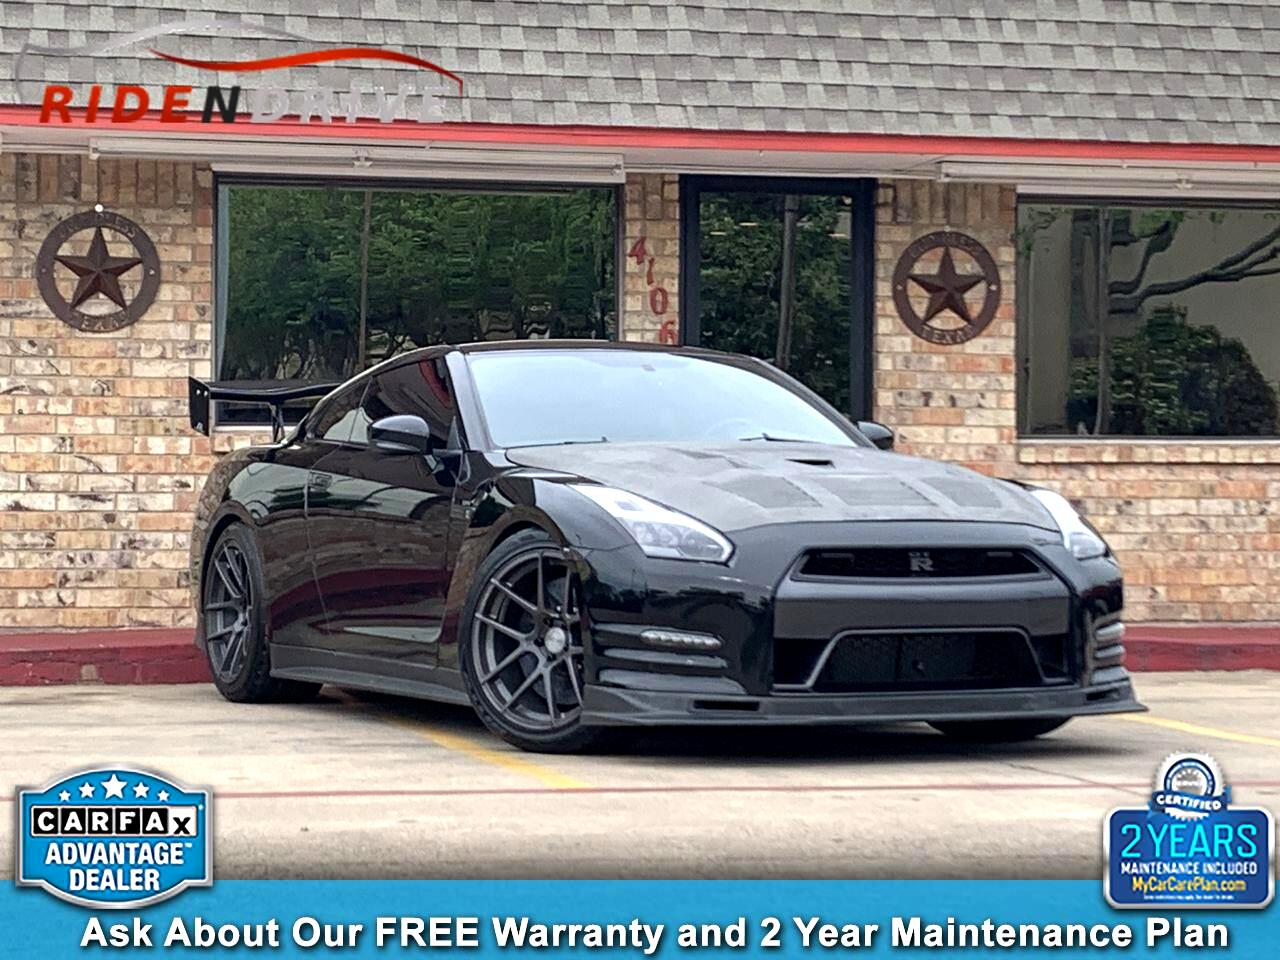 2012 Nissan GT-R 2dr Cpe Black Edition